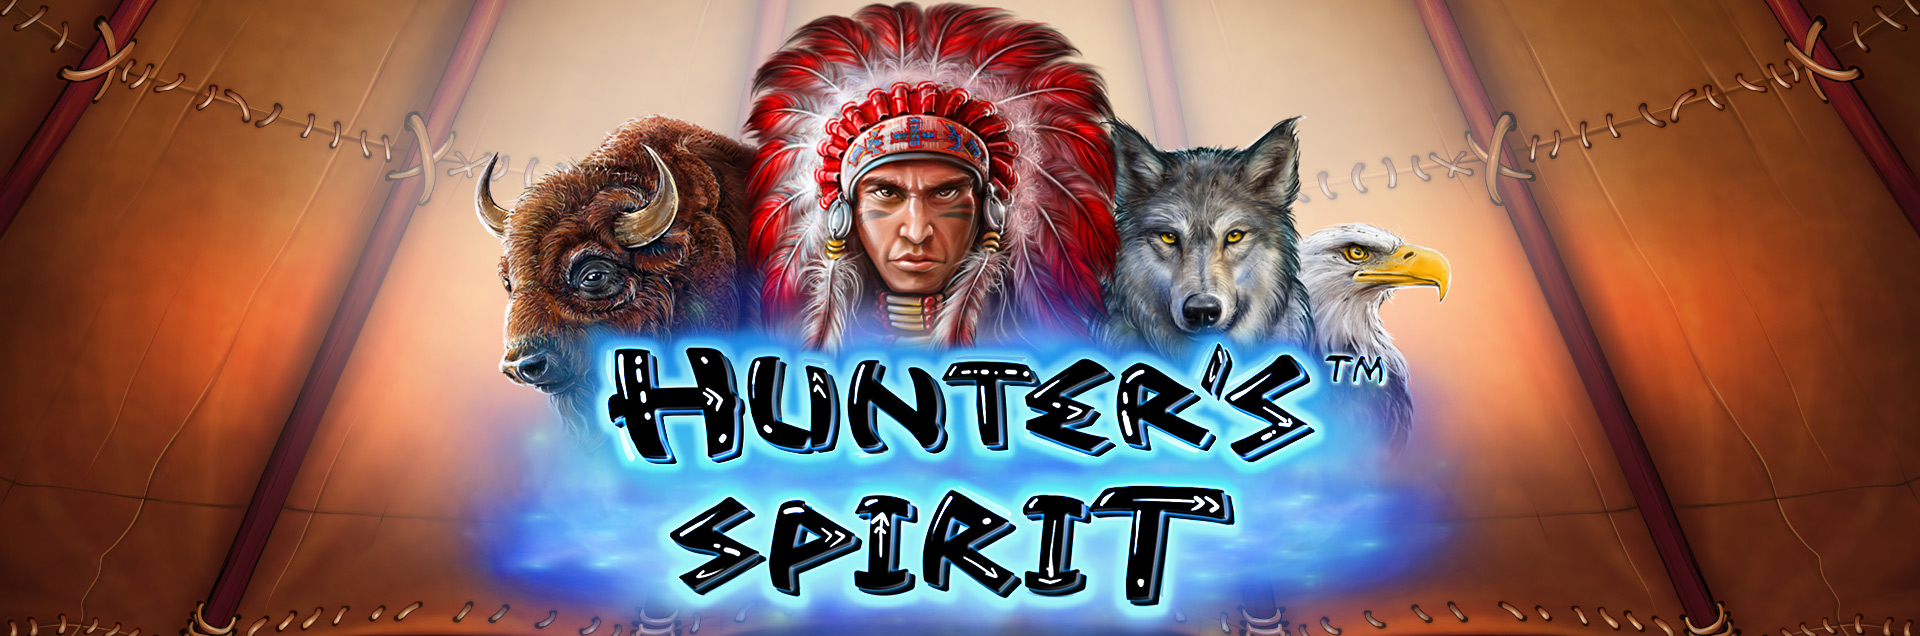 HuntersSpirit logo